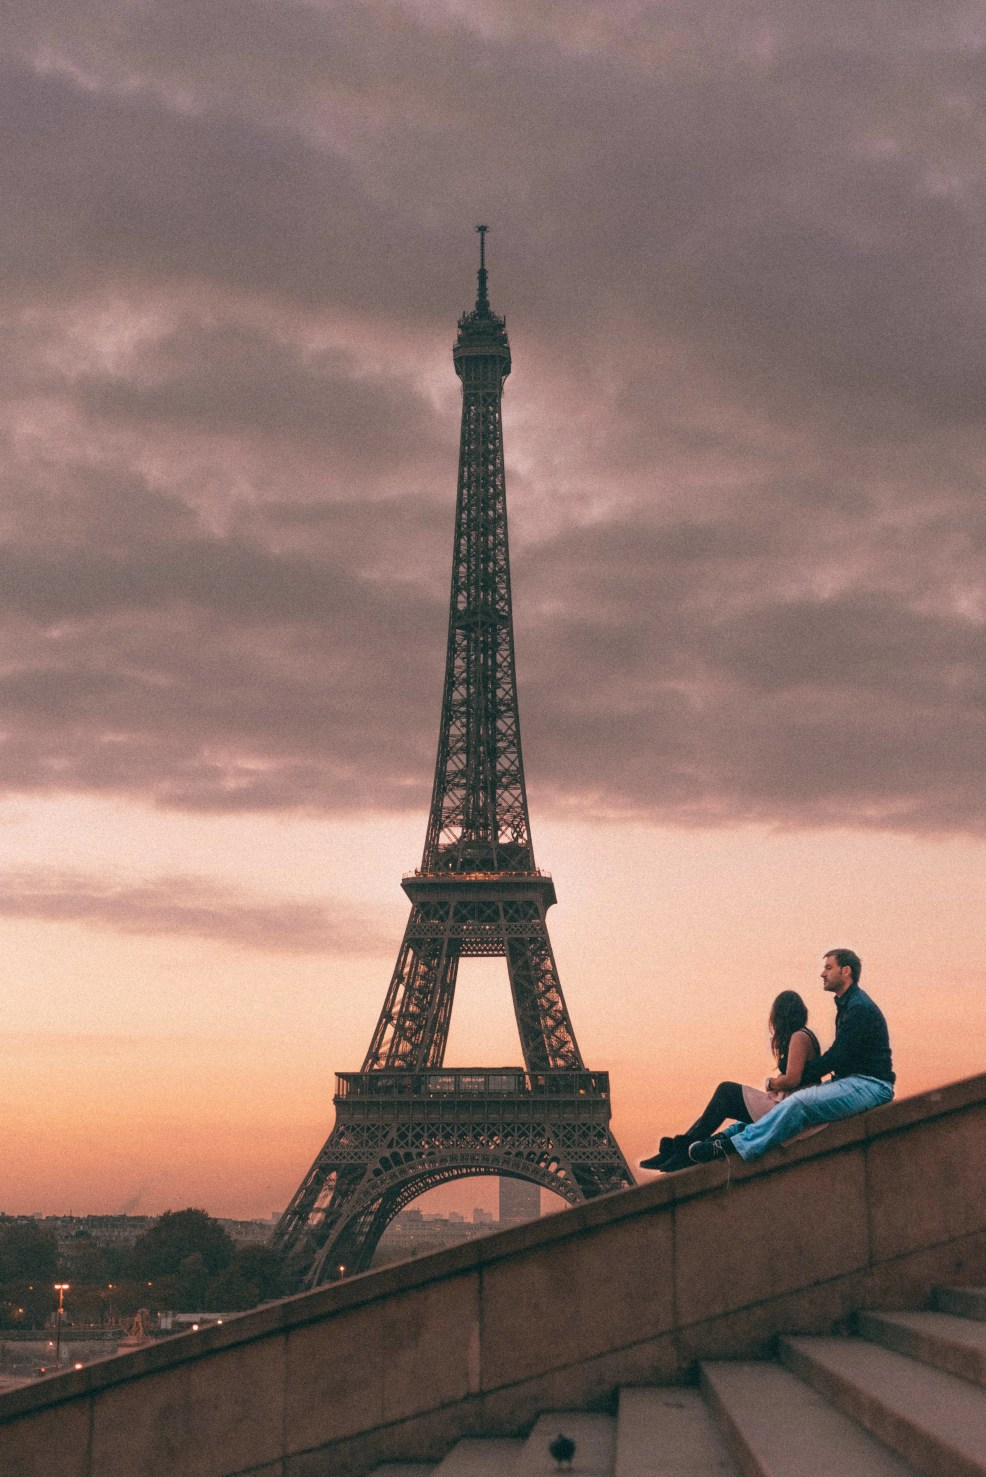 Most Instagrammable places in Paris, Eiffel Tower